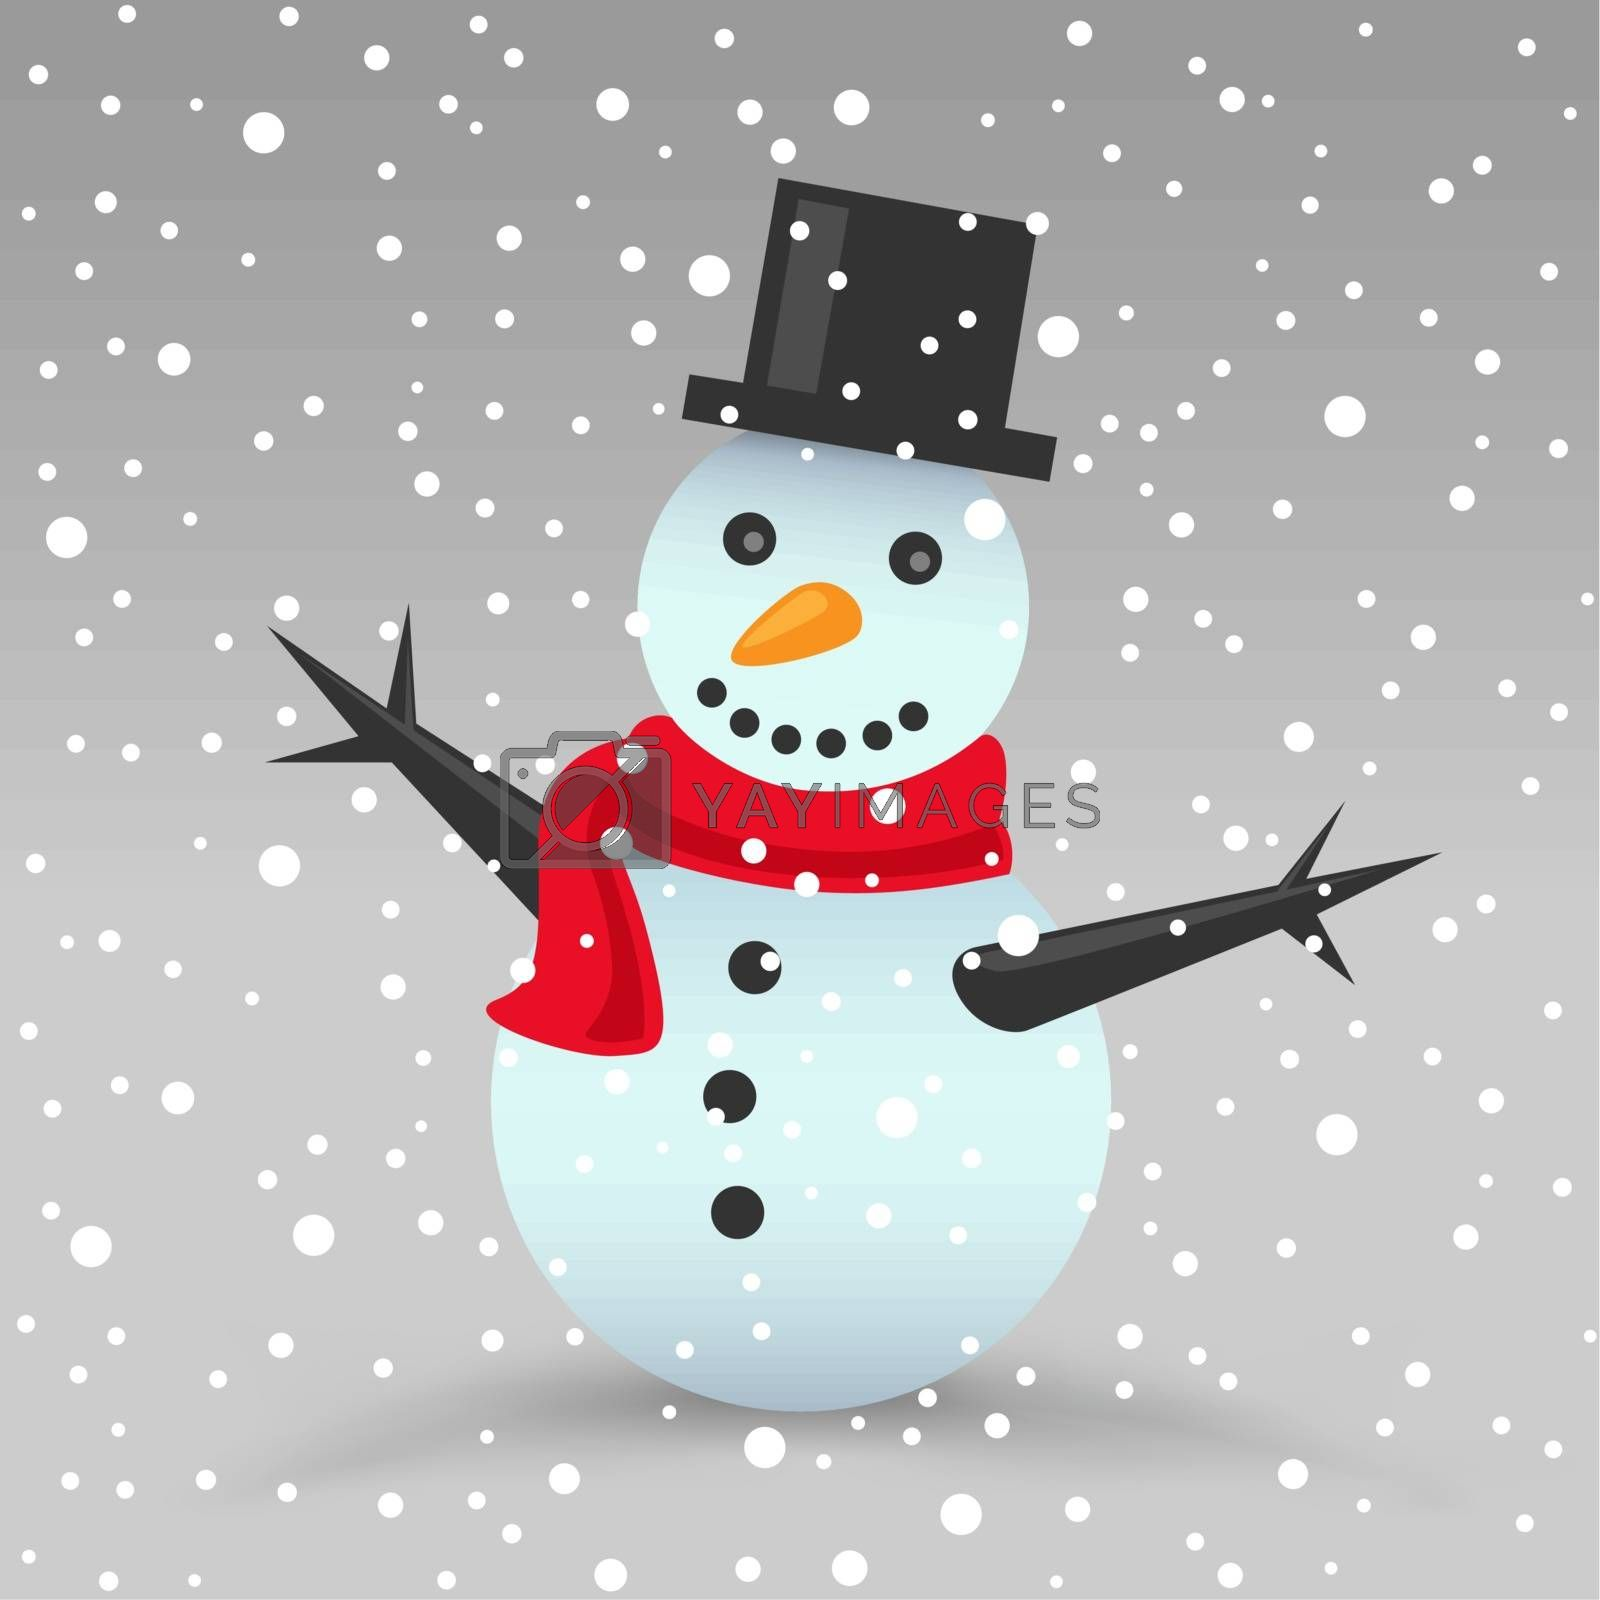 The Christmas snowman with red scarf and snow gray background